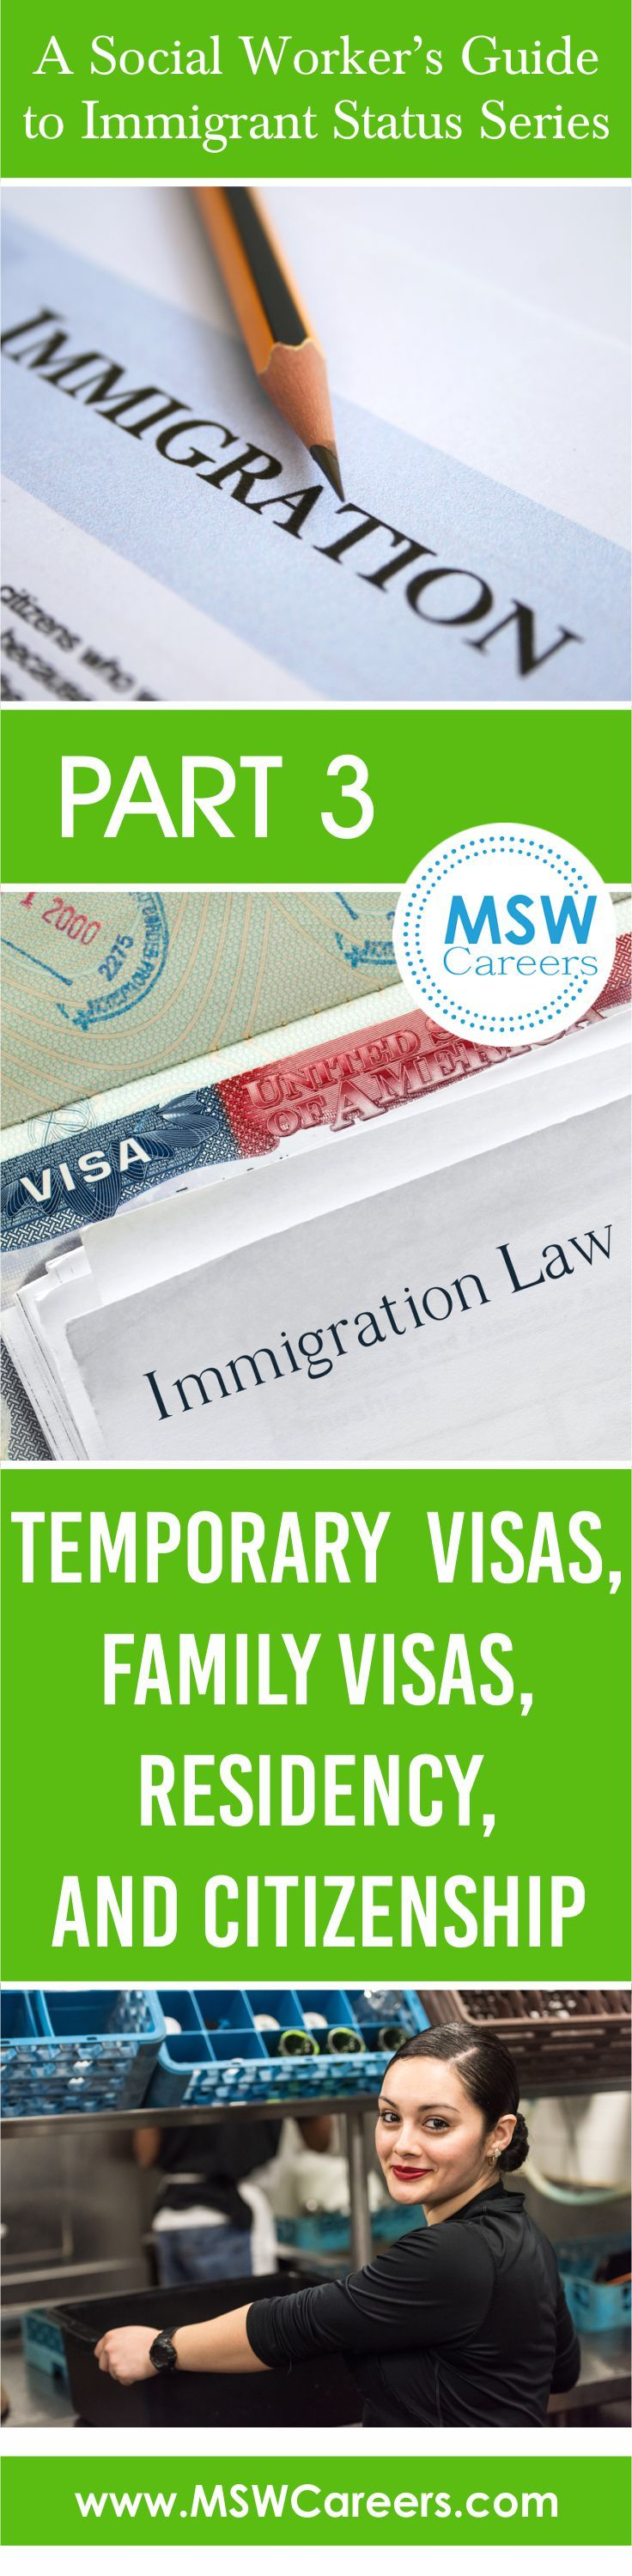 Immigrant visas status provide paths to becoming a Lawful Permanent Residents and citizens. Learn how to help your client's immigrant visa status.